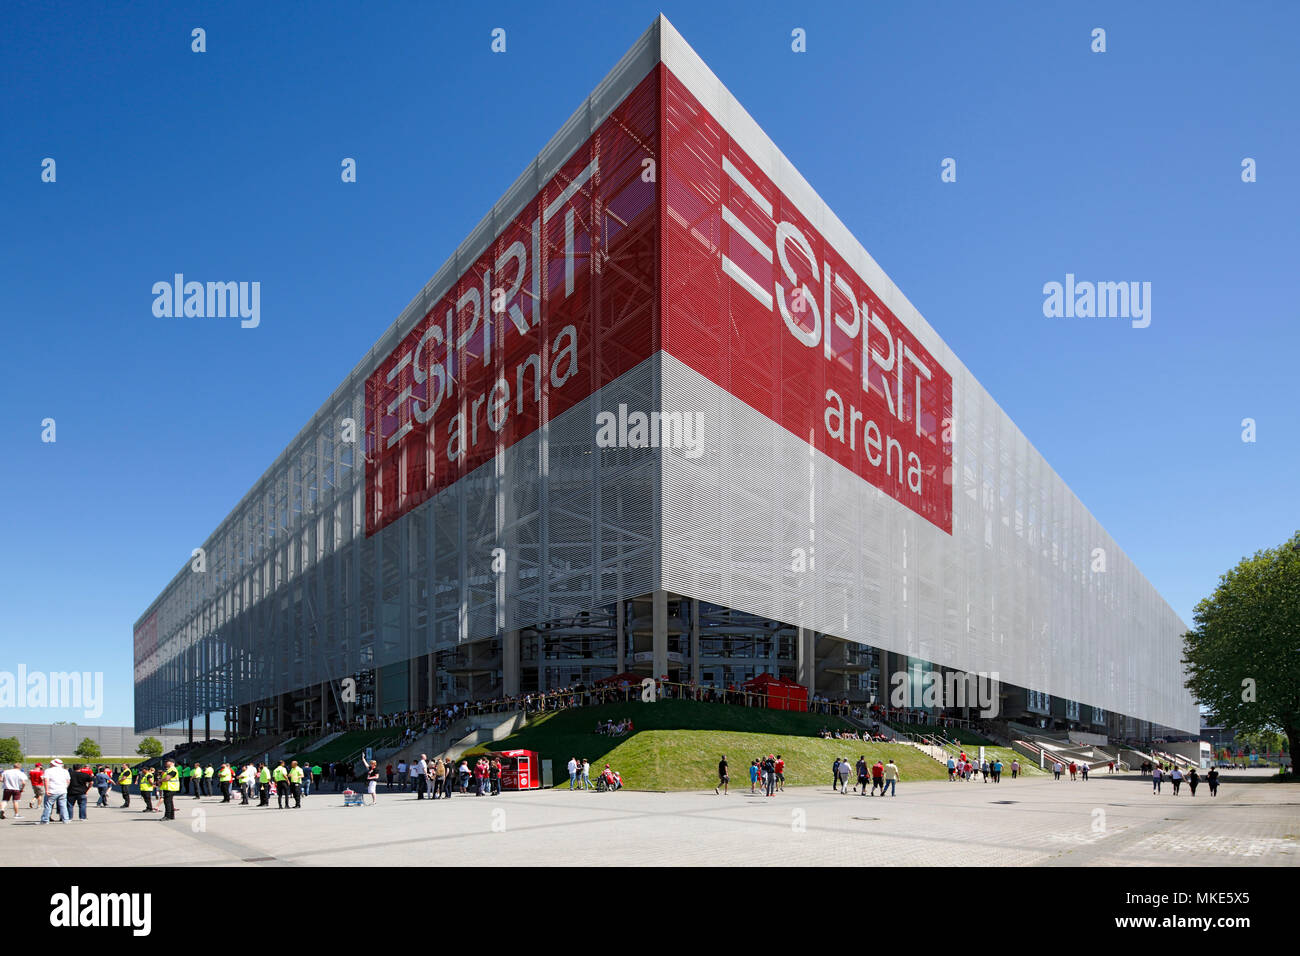 sports,football,2. Bundesliga,2017/2018,Fortuna Duesseldorf vs Holstein Kiel 1:1,Esprit arena Duesseldorf,stadium view - Stock Image